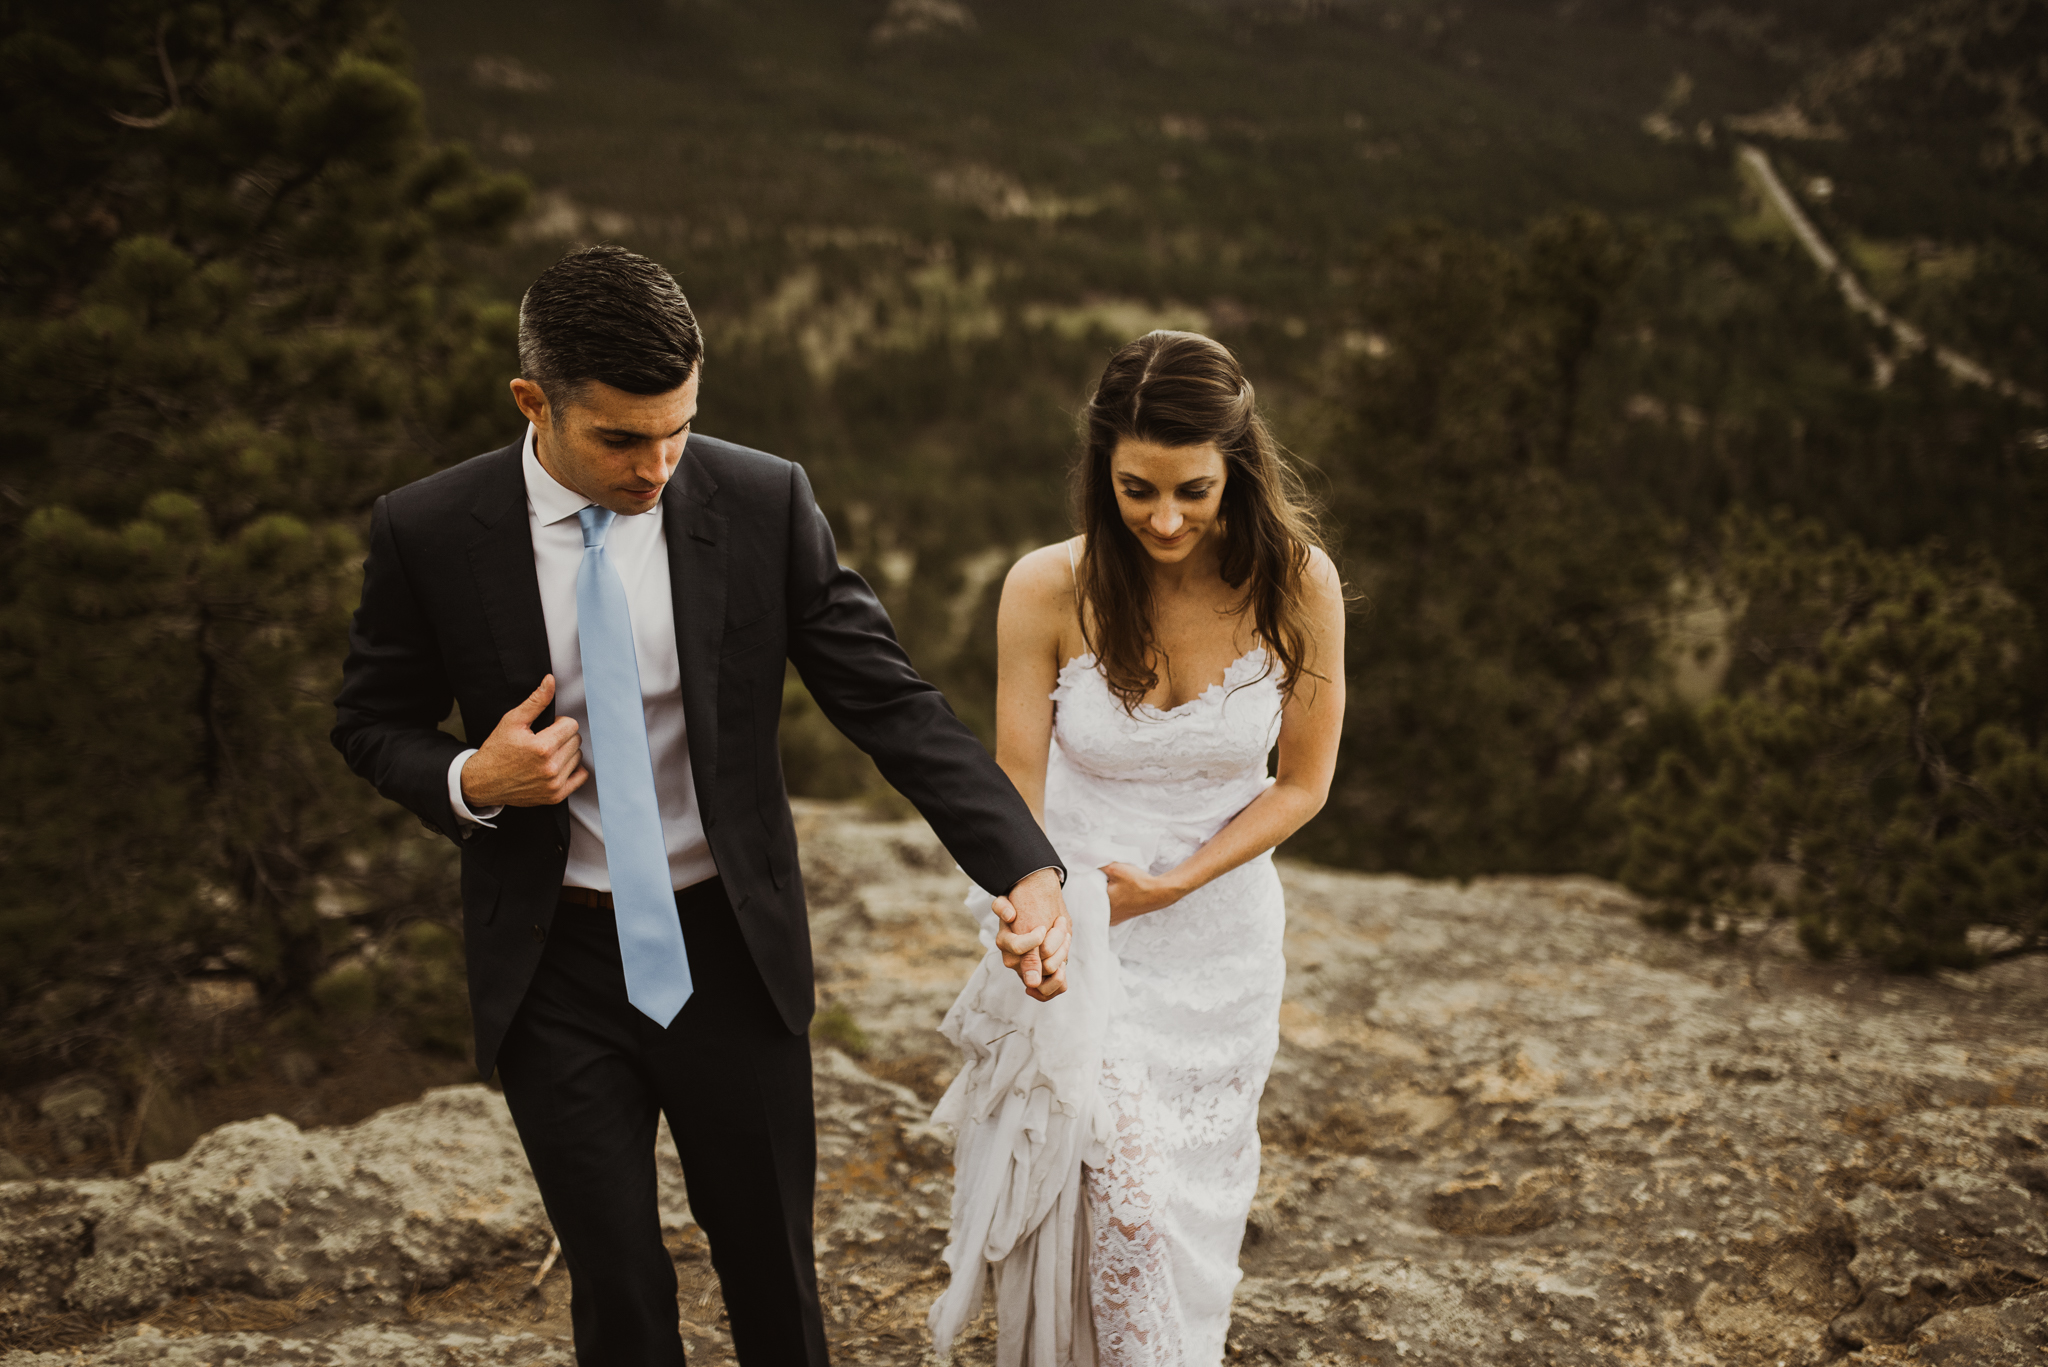 ©Isaiah + Taylor Photography - Estes National Park Adventure Elopement, Colorado Rockies-137.jpg